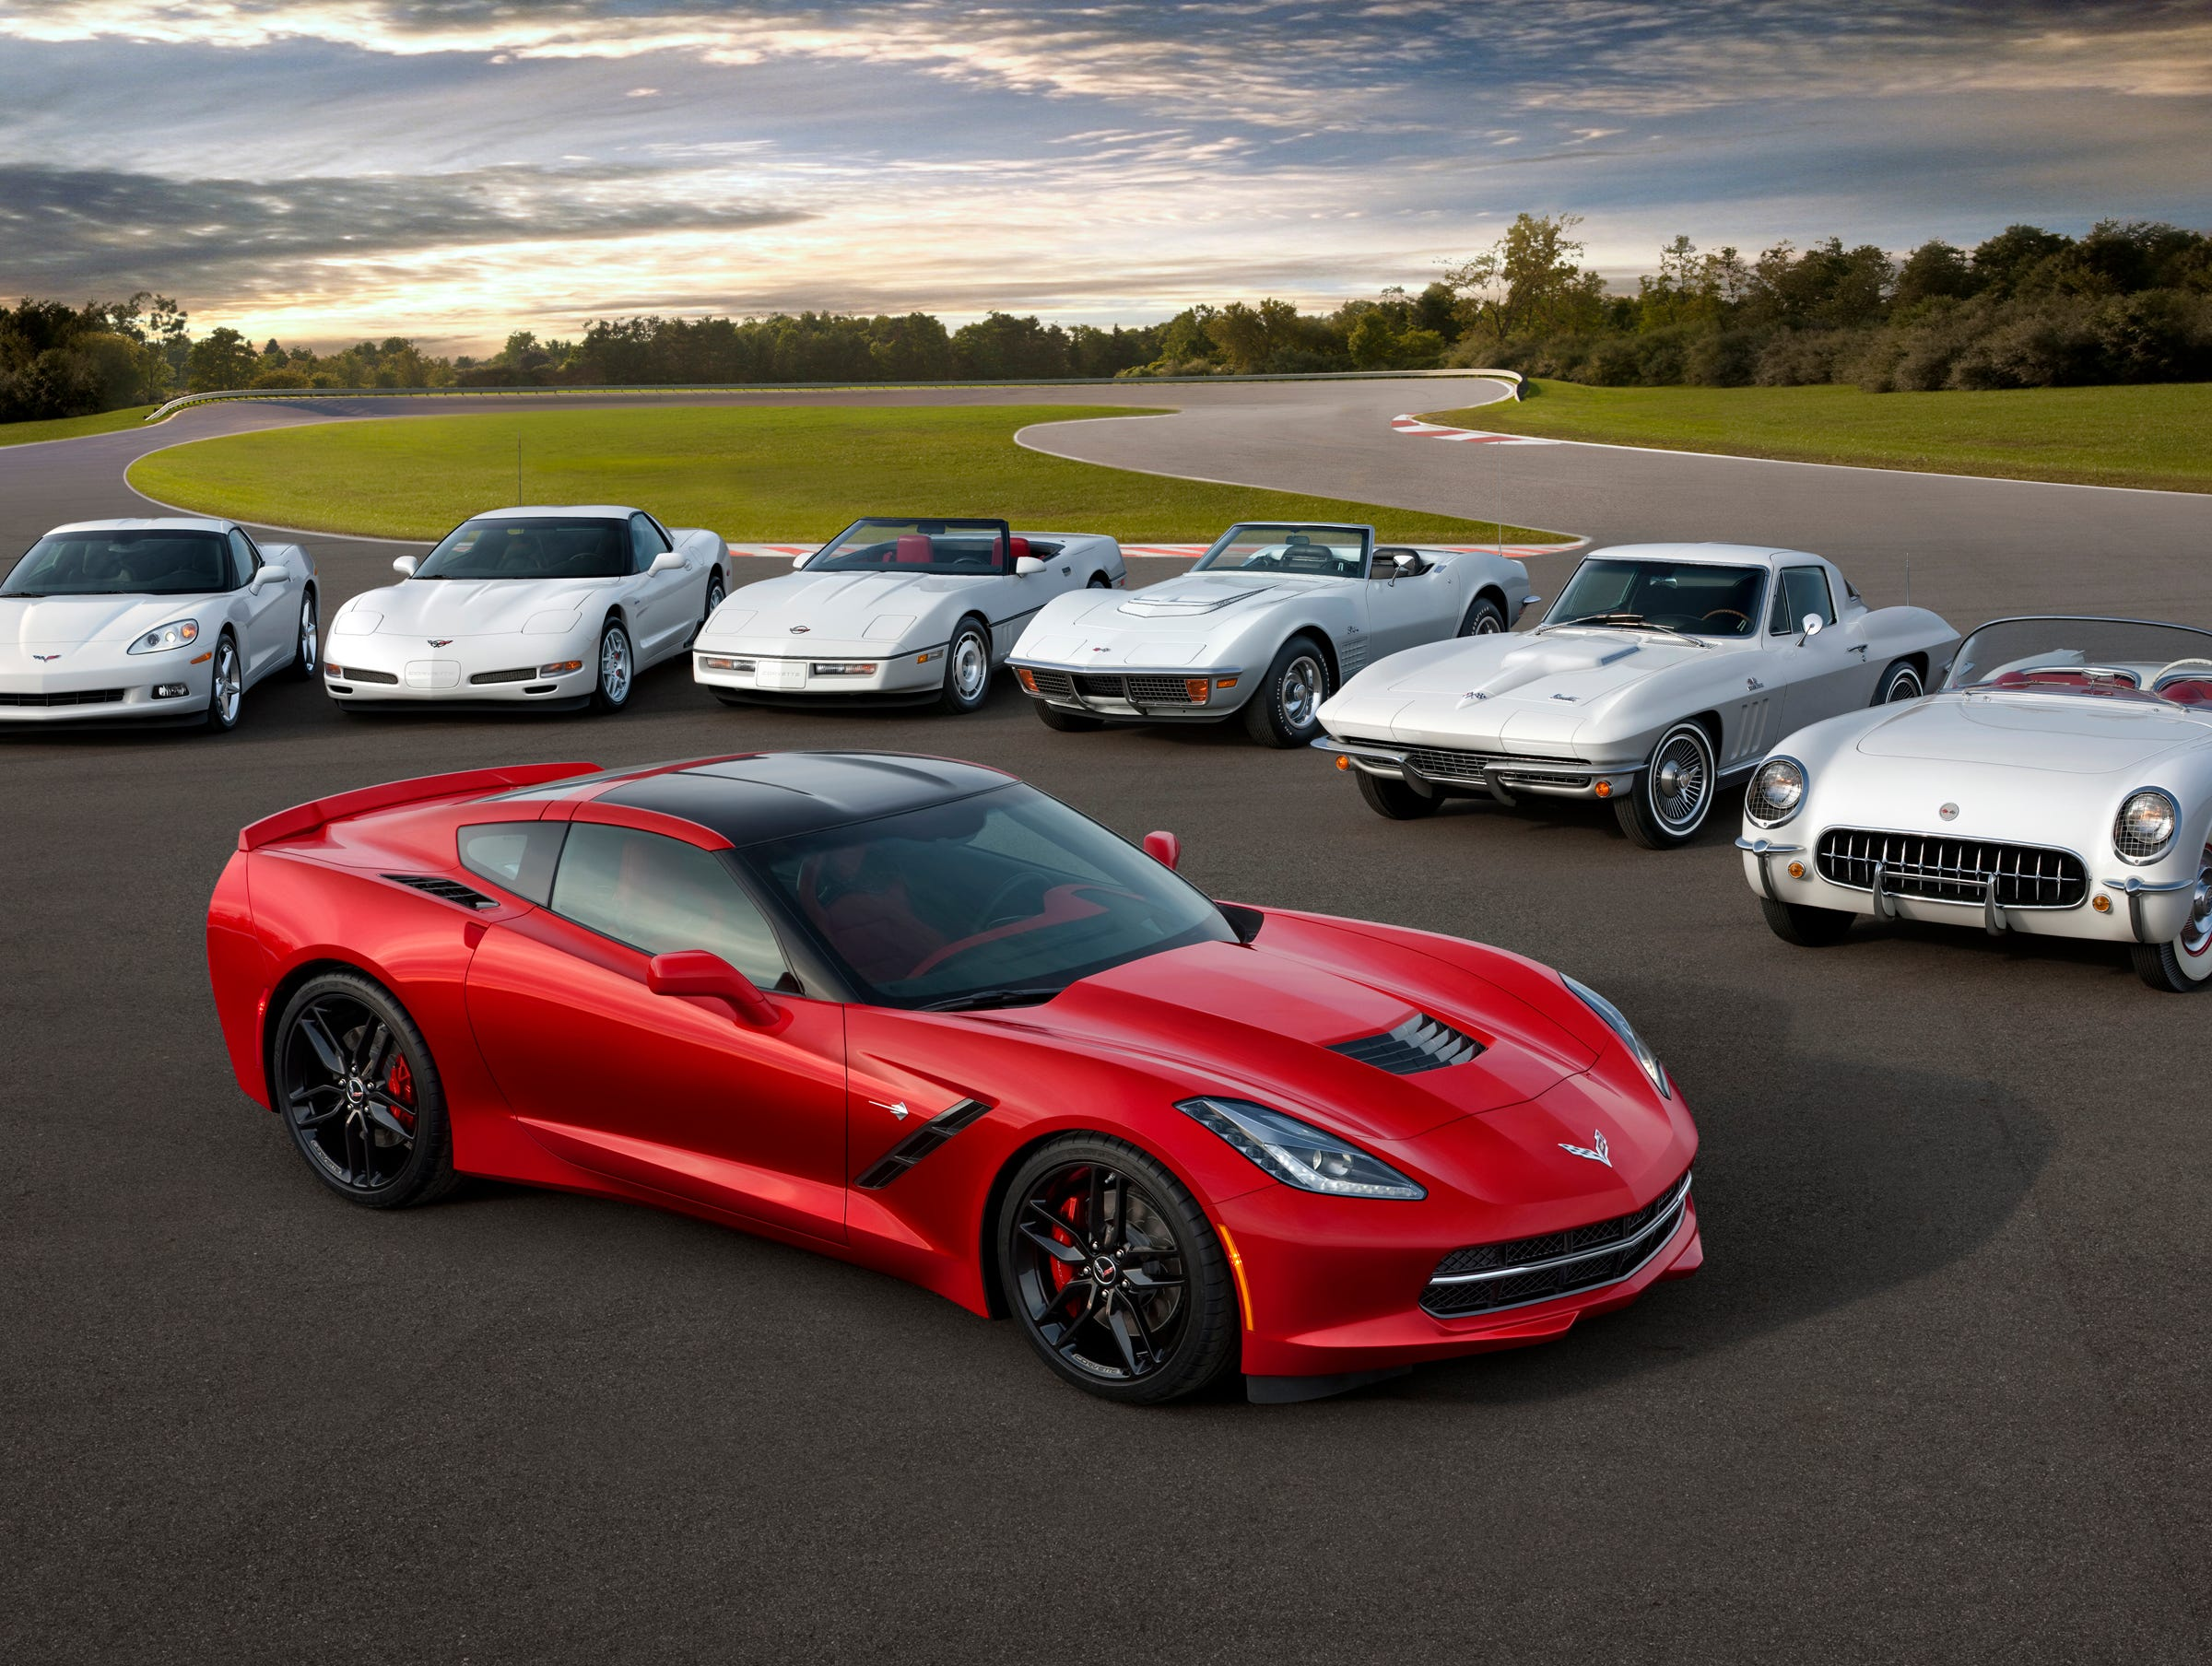 60 years of sports cars: The seven generations of Chevrolet Corvette going back to the original that rolled out in 1953.